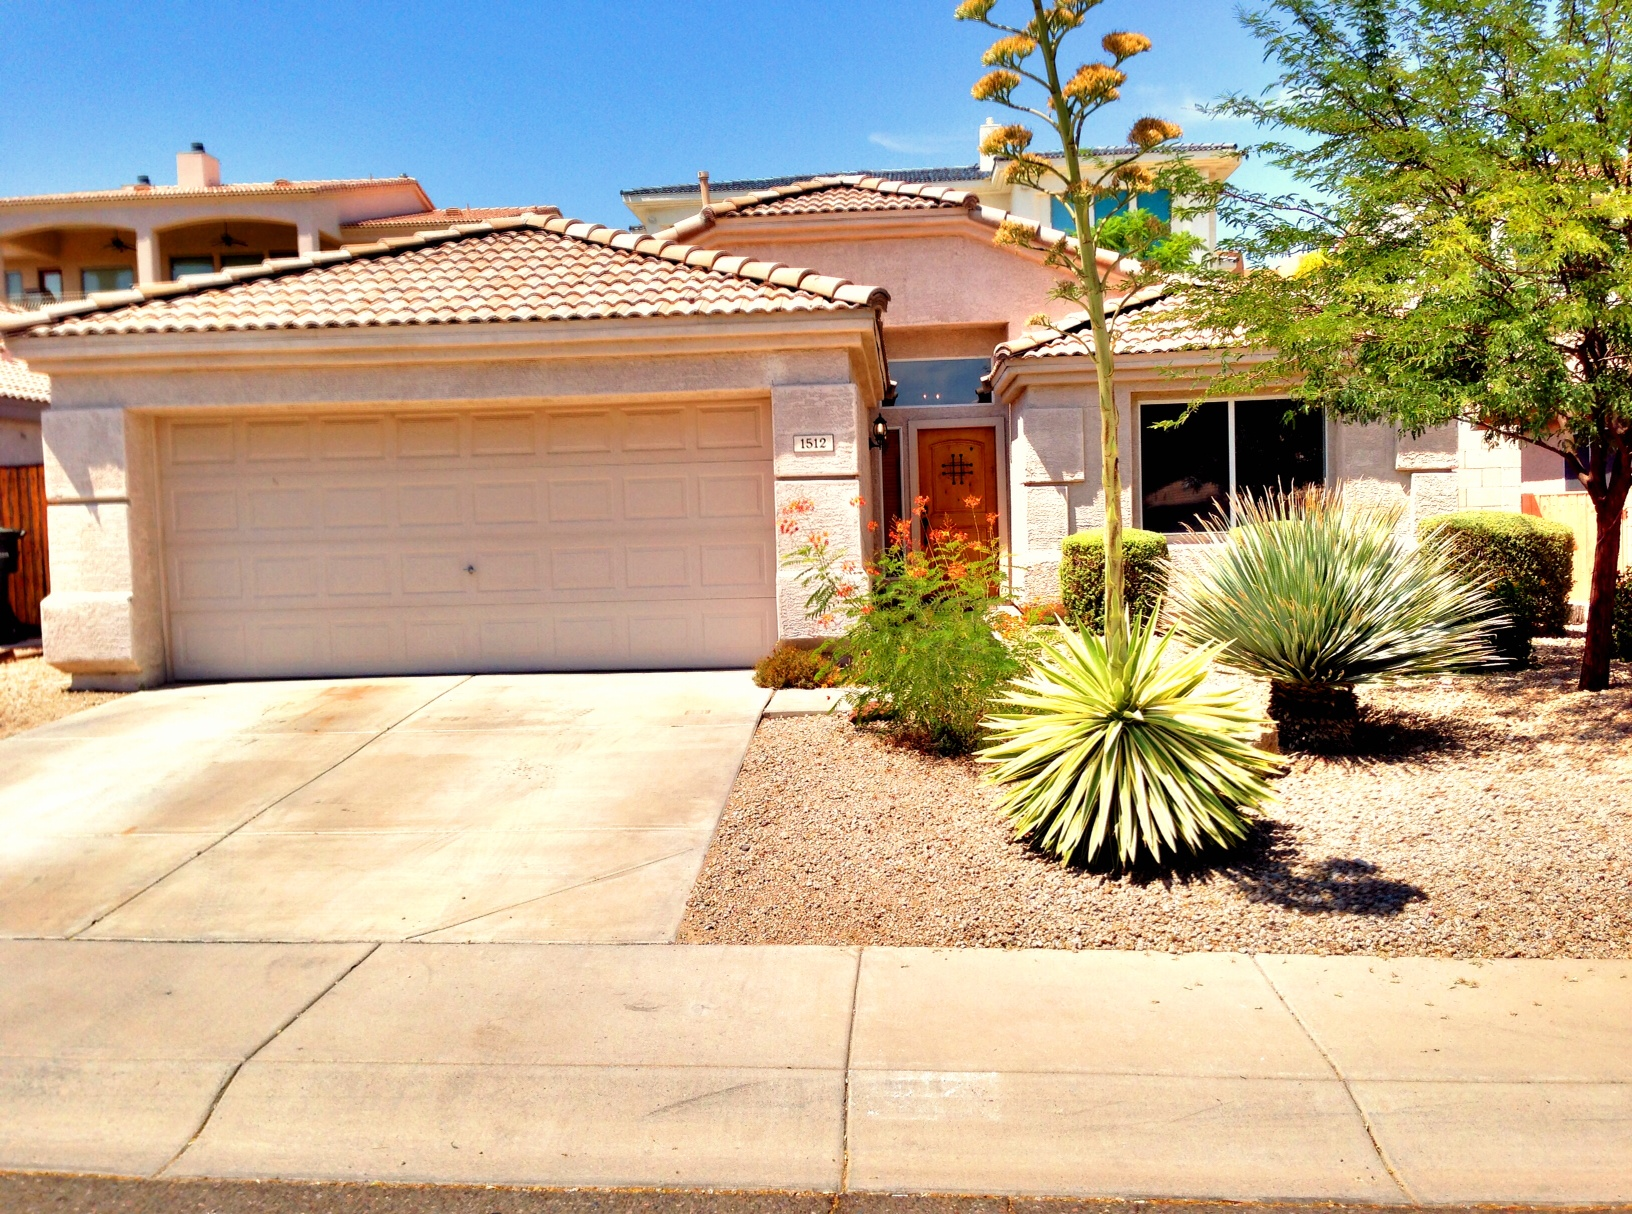 LEASED – 1512 E. Villa Rita Drive, Phoenix, AZ 85022 – Gorgeous 3 bed – 2 bath – elevated lot